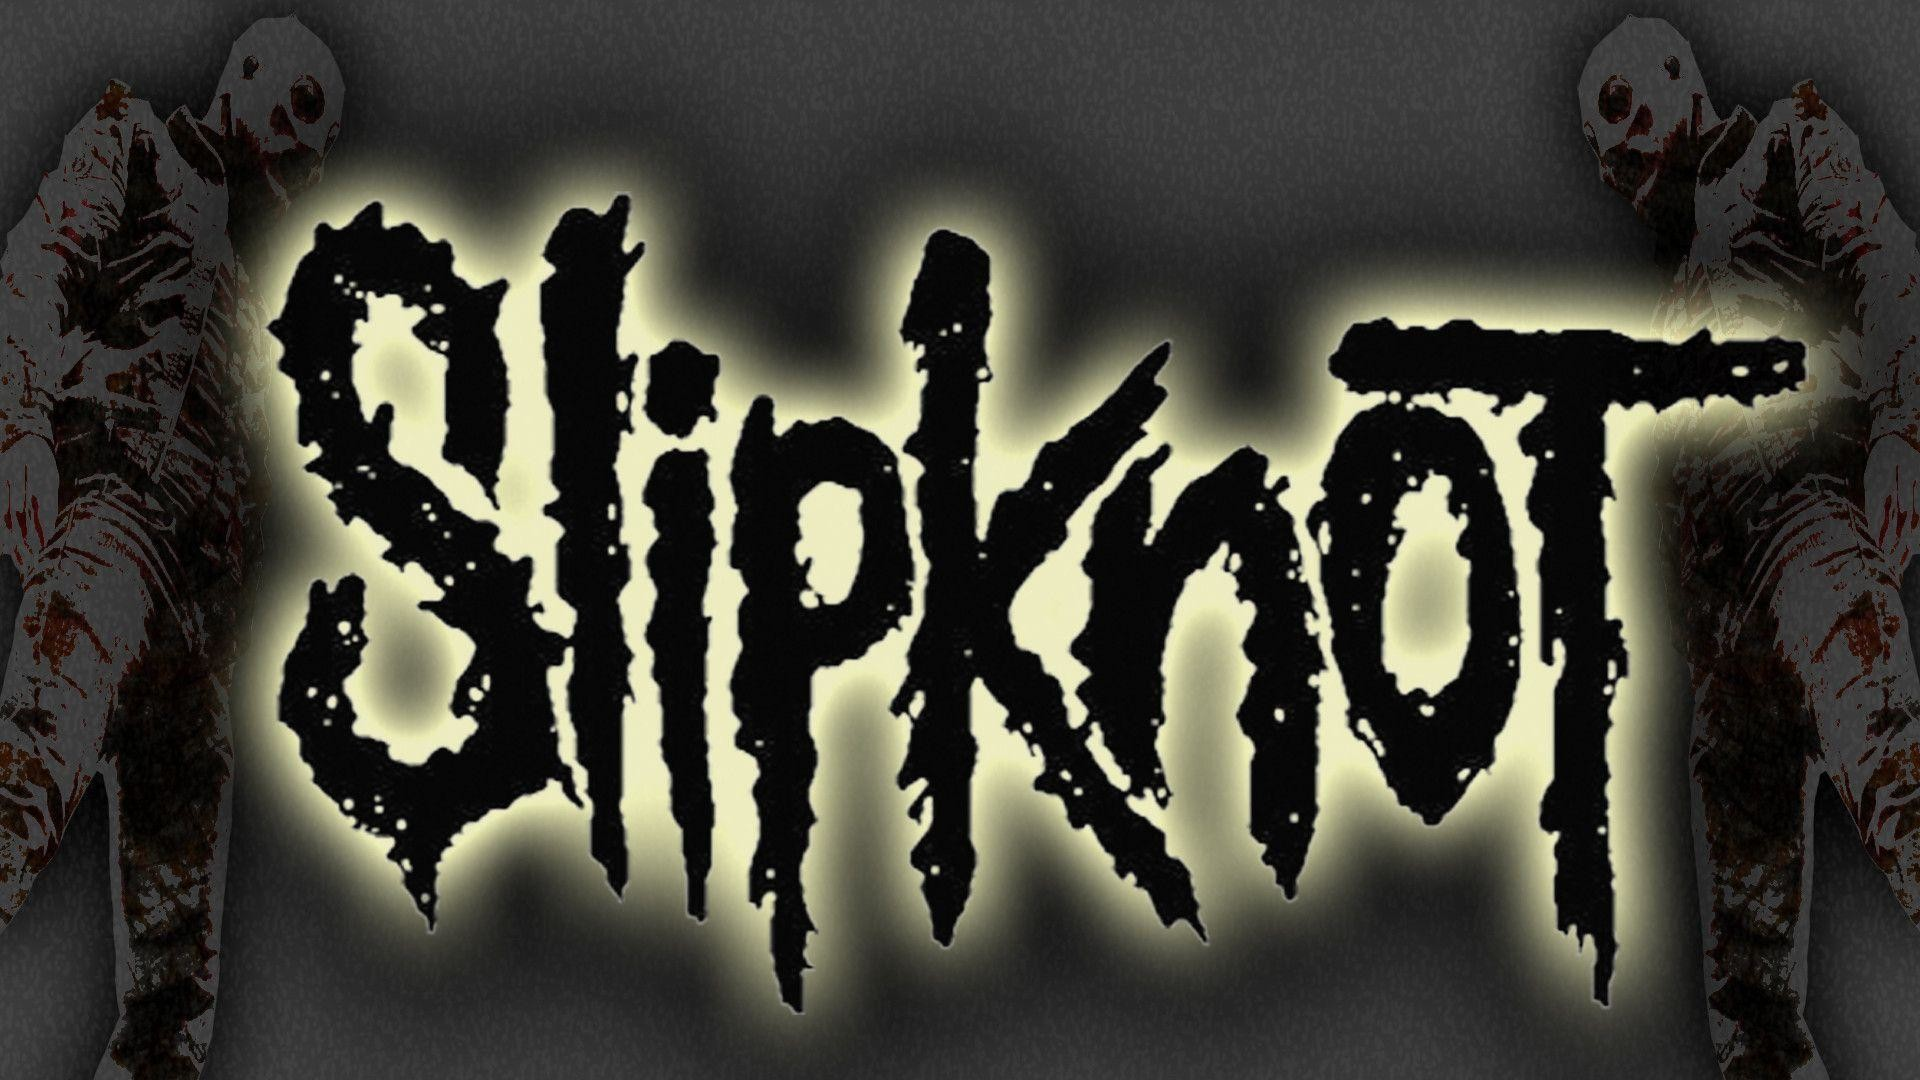 Falling In Reverse Live Wallpaper Slipknot 2017 Wallpaper 183 ① Wallpapertag